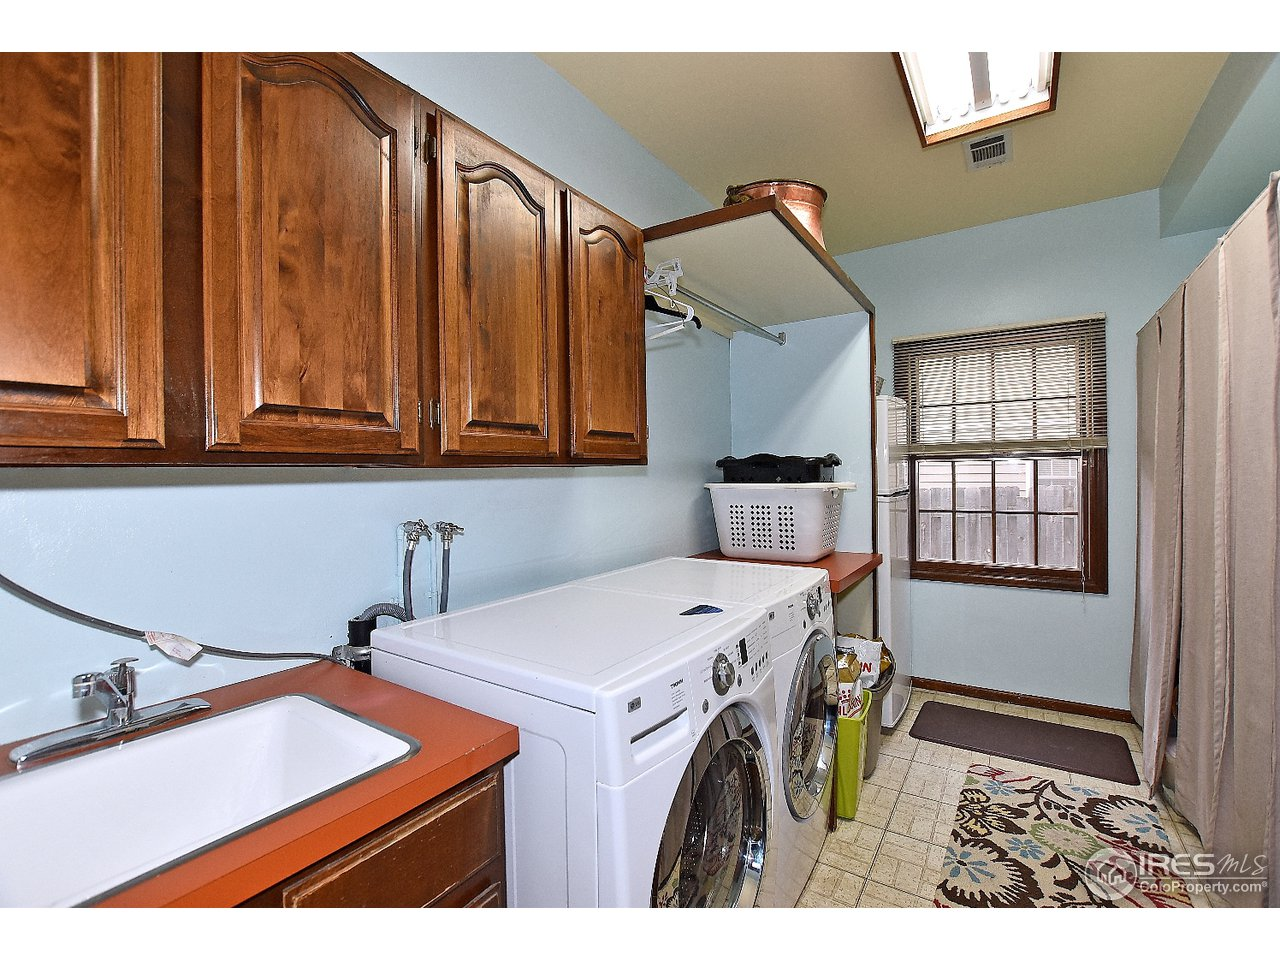 Large laundry room with cabinets